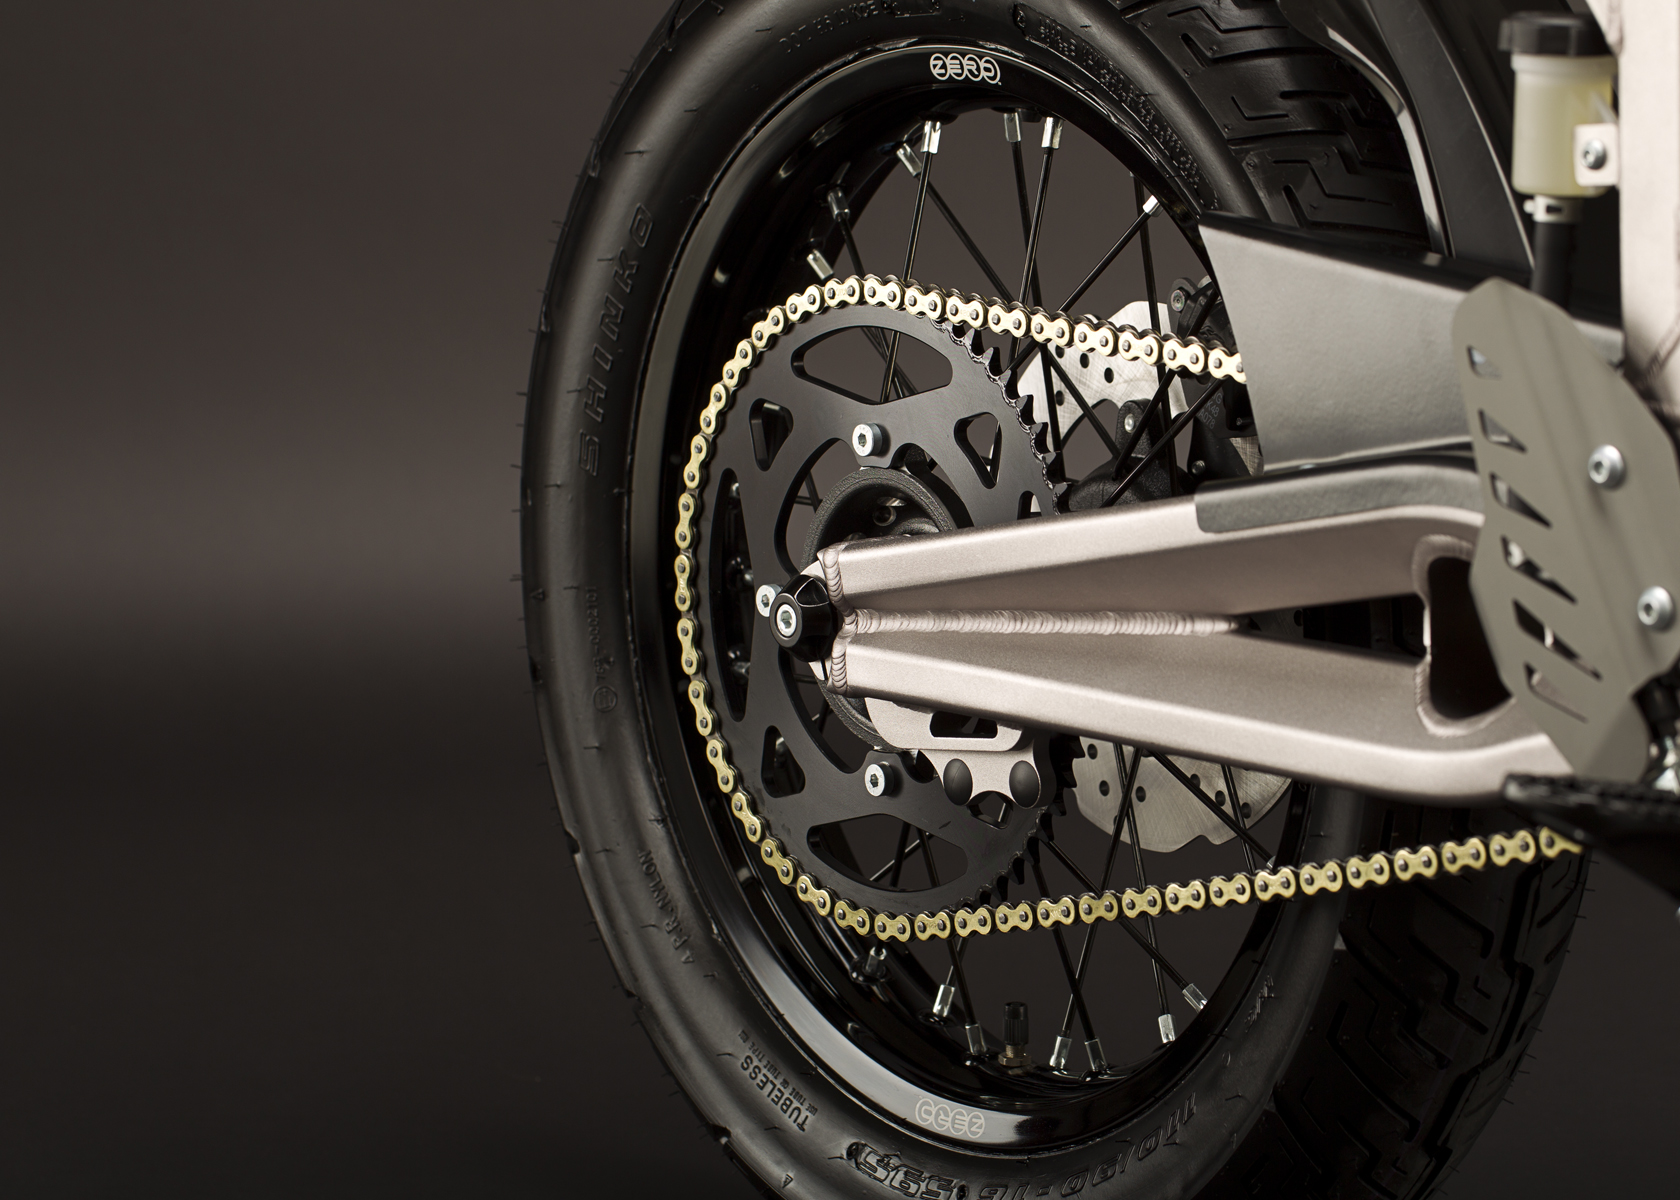 2011 Zero XU Electric Motorcycle: Swingarm